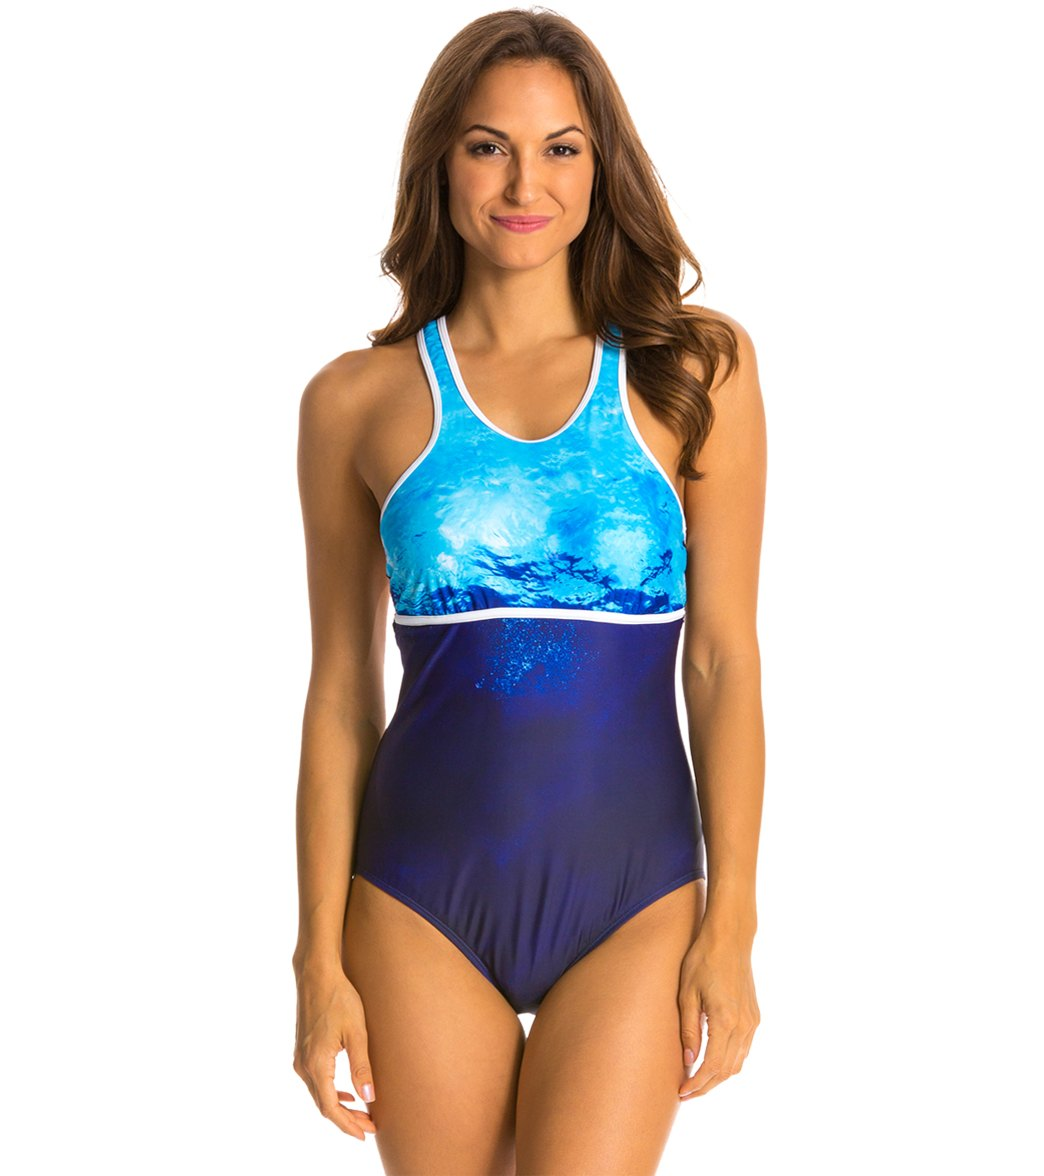 07abae705d Nautica H2O Active Into the Blue Racerback Soft Cup One Piece ...